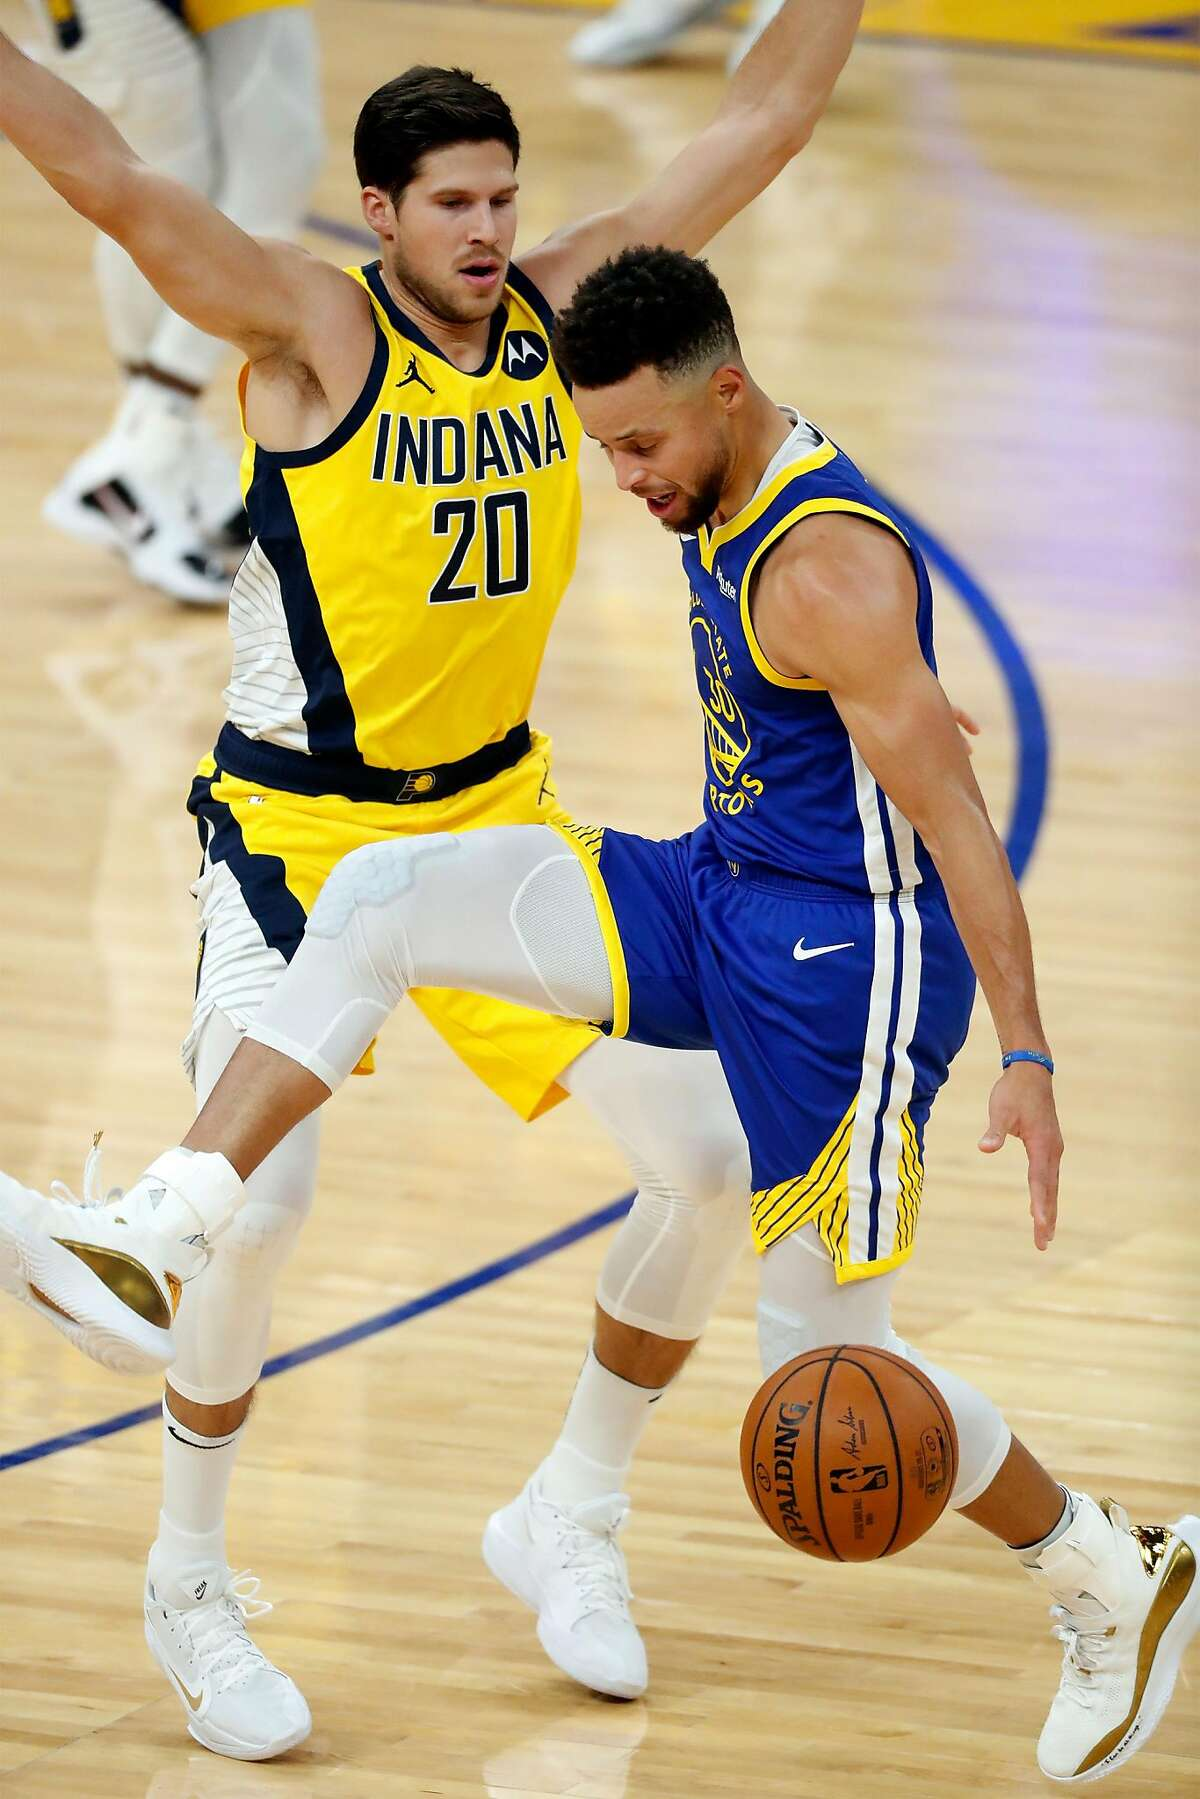 Golden State Warriors' Stephen Curry loses the ball after being fouled by Indiana Pacers' Doug McDermott in 1st quarter during NBA game at Chase Center in San Francisco, Calif., on Tuesday, January 12, 2021.